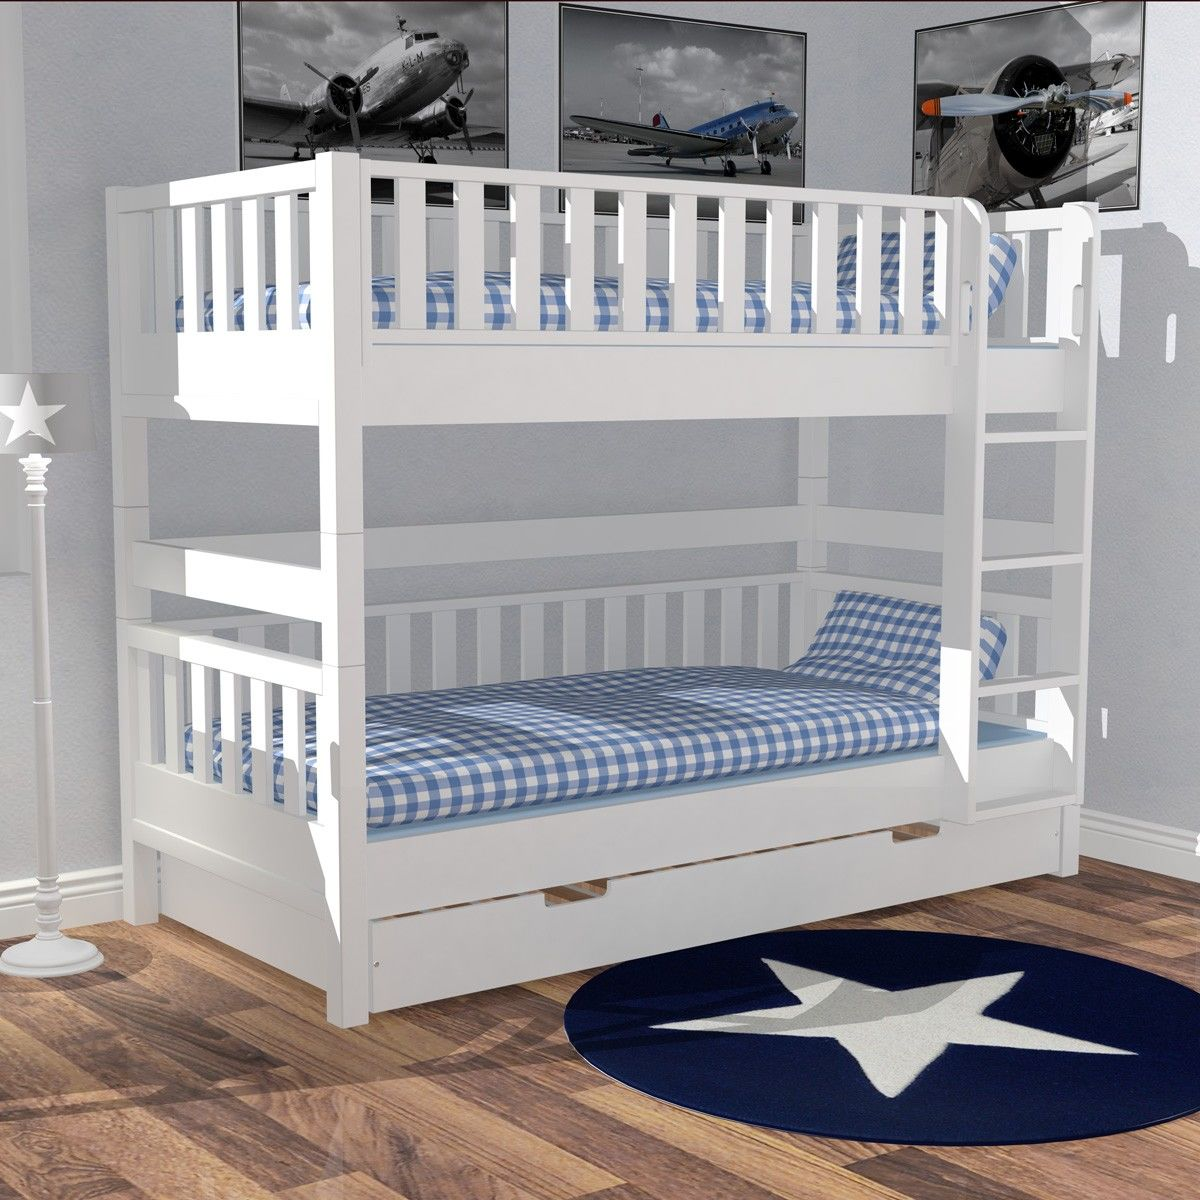 panda kinderm bel pr sentiert etagenbett im. Black Bedroom Furniture Sets. Home Design Ideas